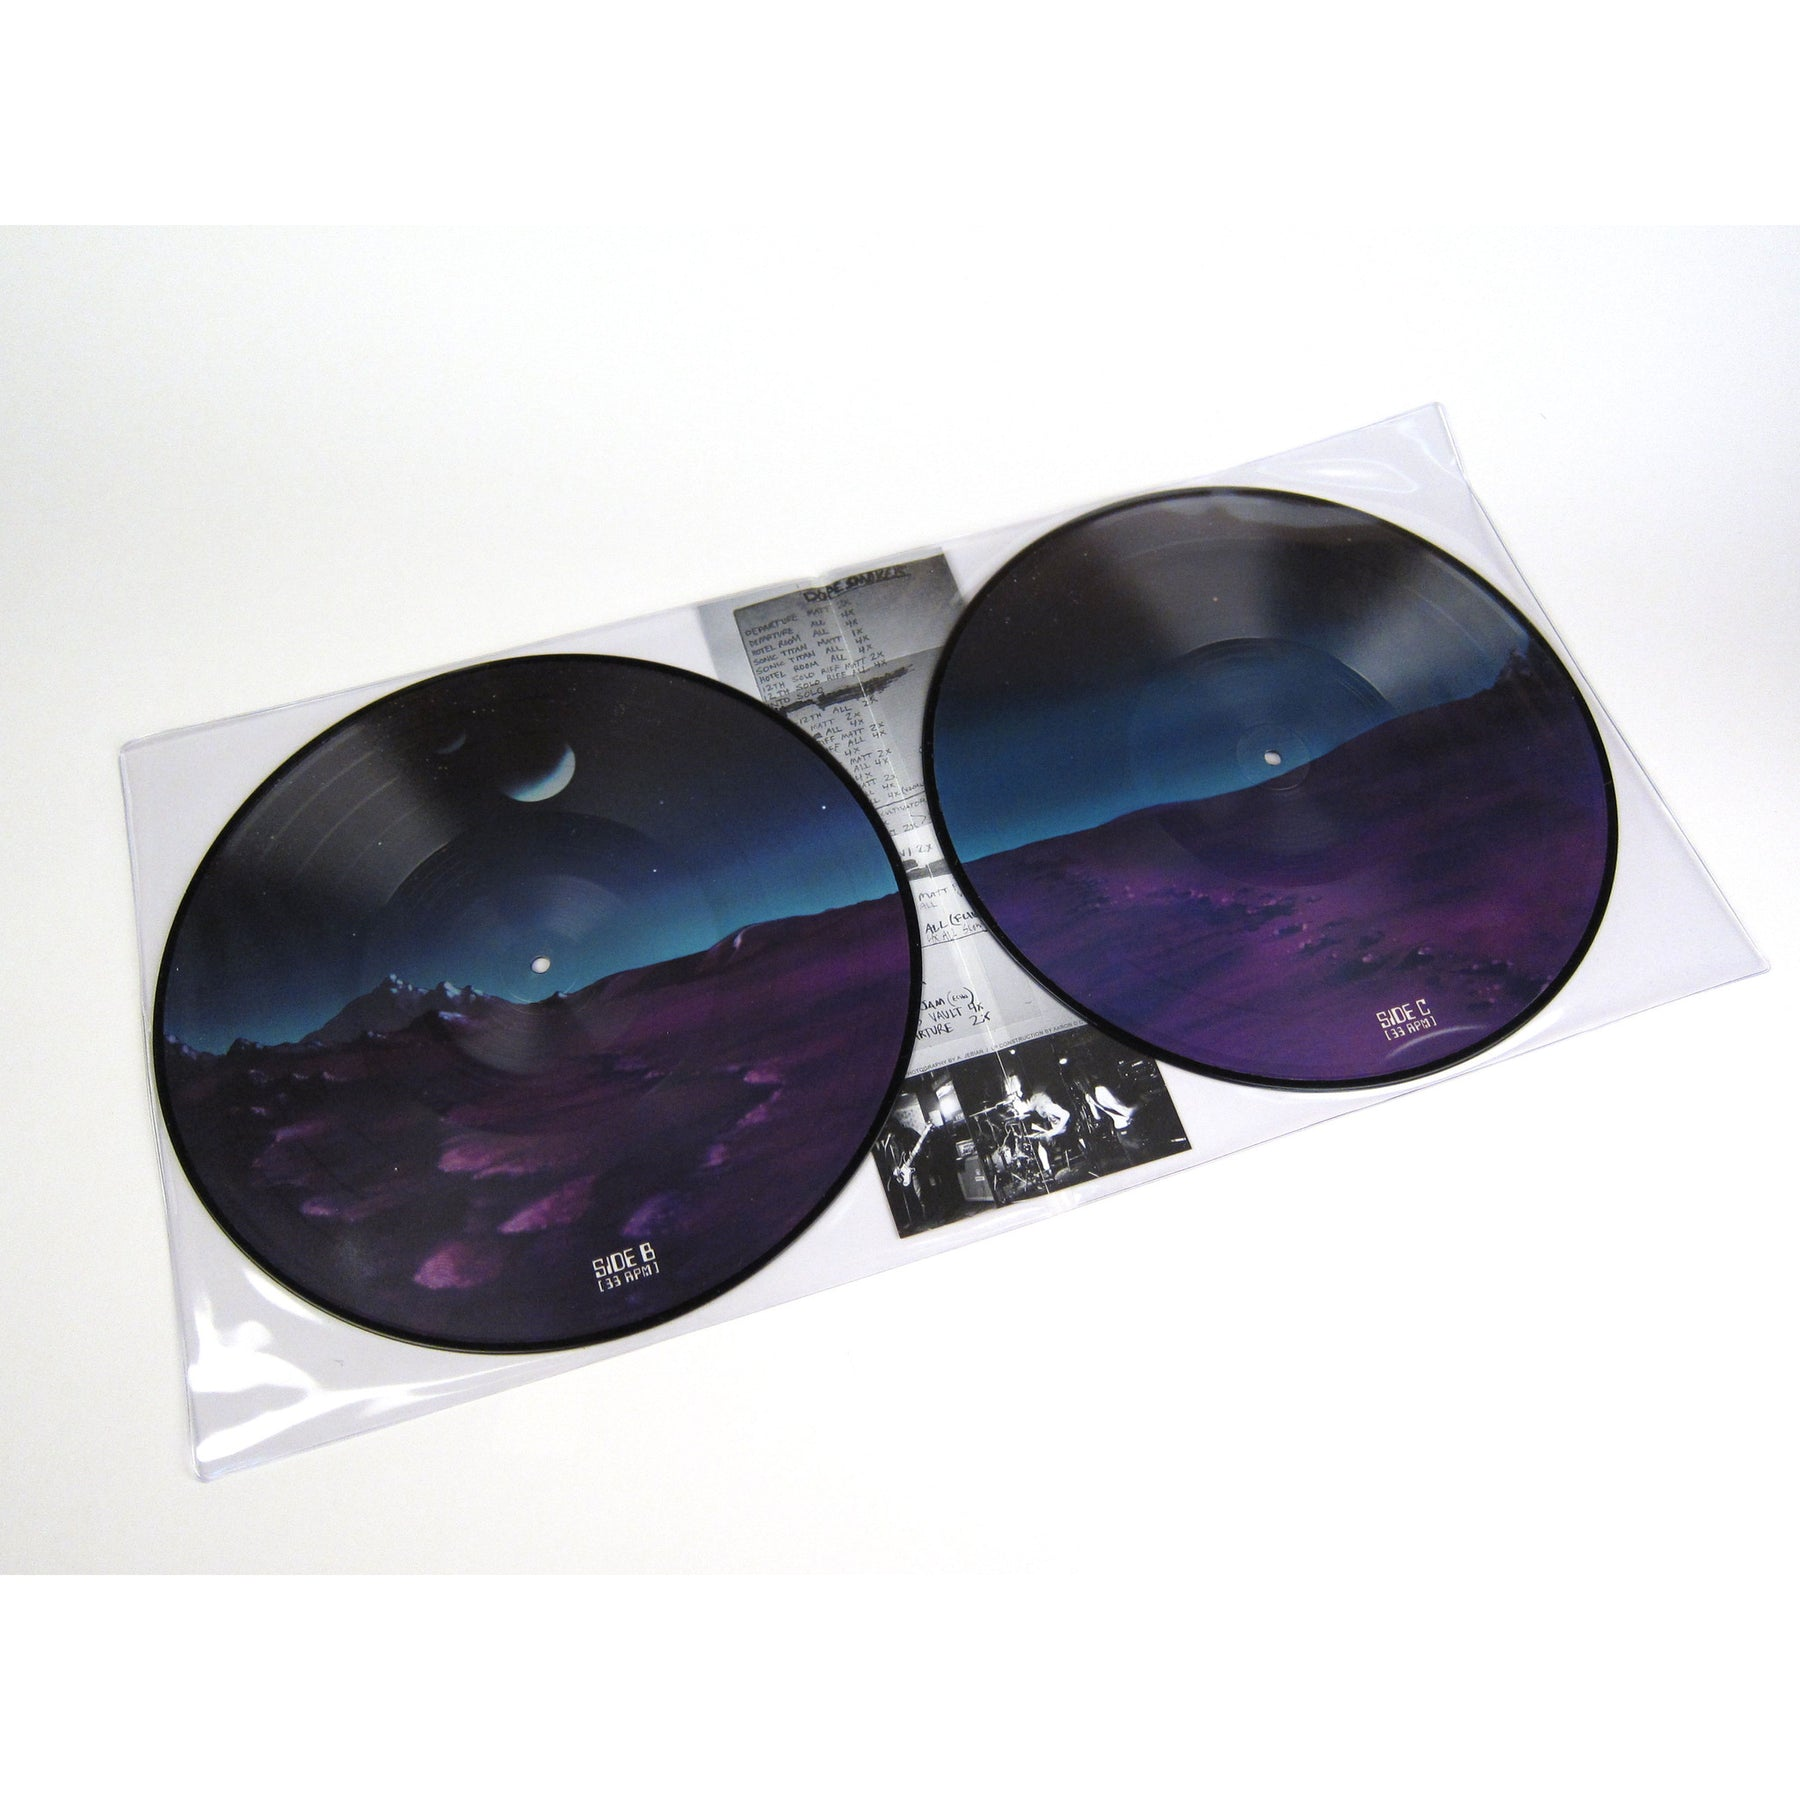 Sleep Dopesmoker (180g, Pic Disc) Vinyl 2LP